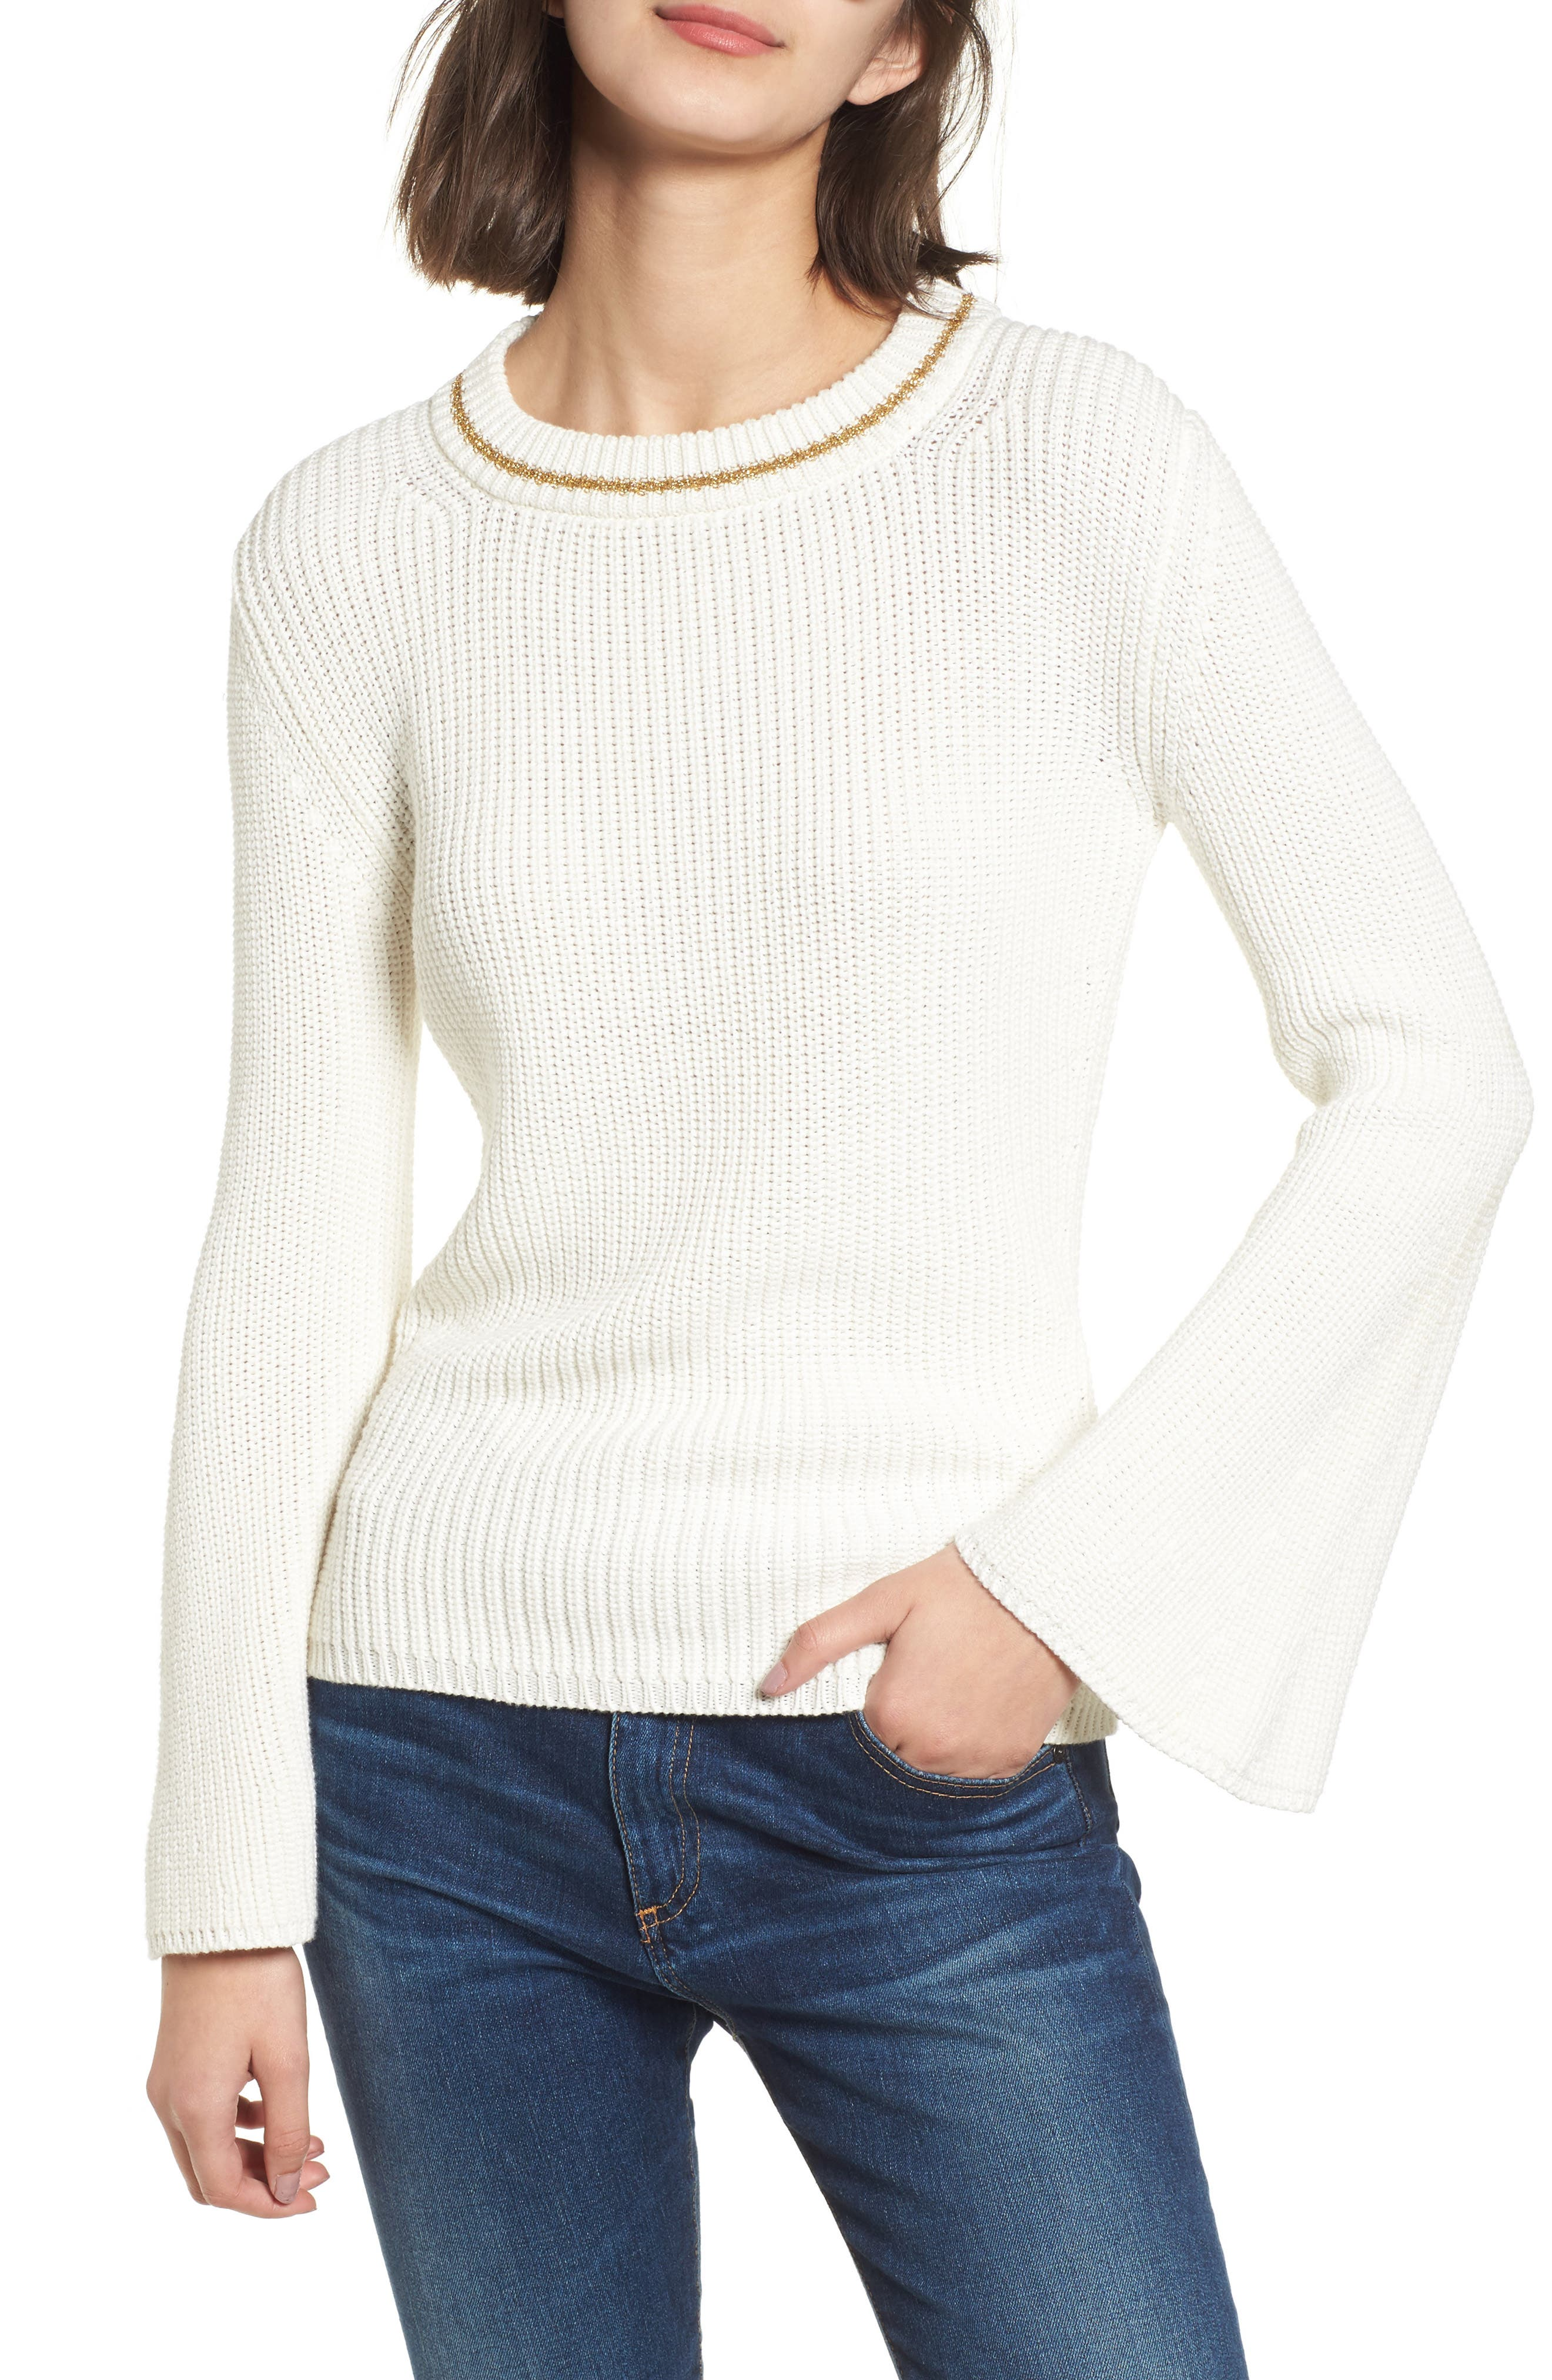 Coco Sweater,                             Main thumbnail 1, color,                             White